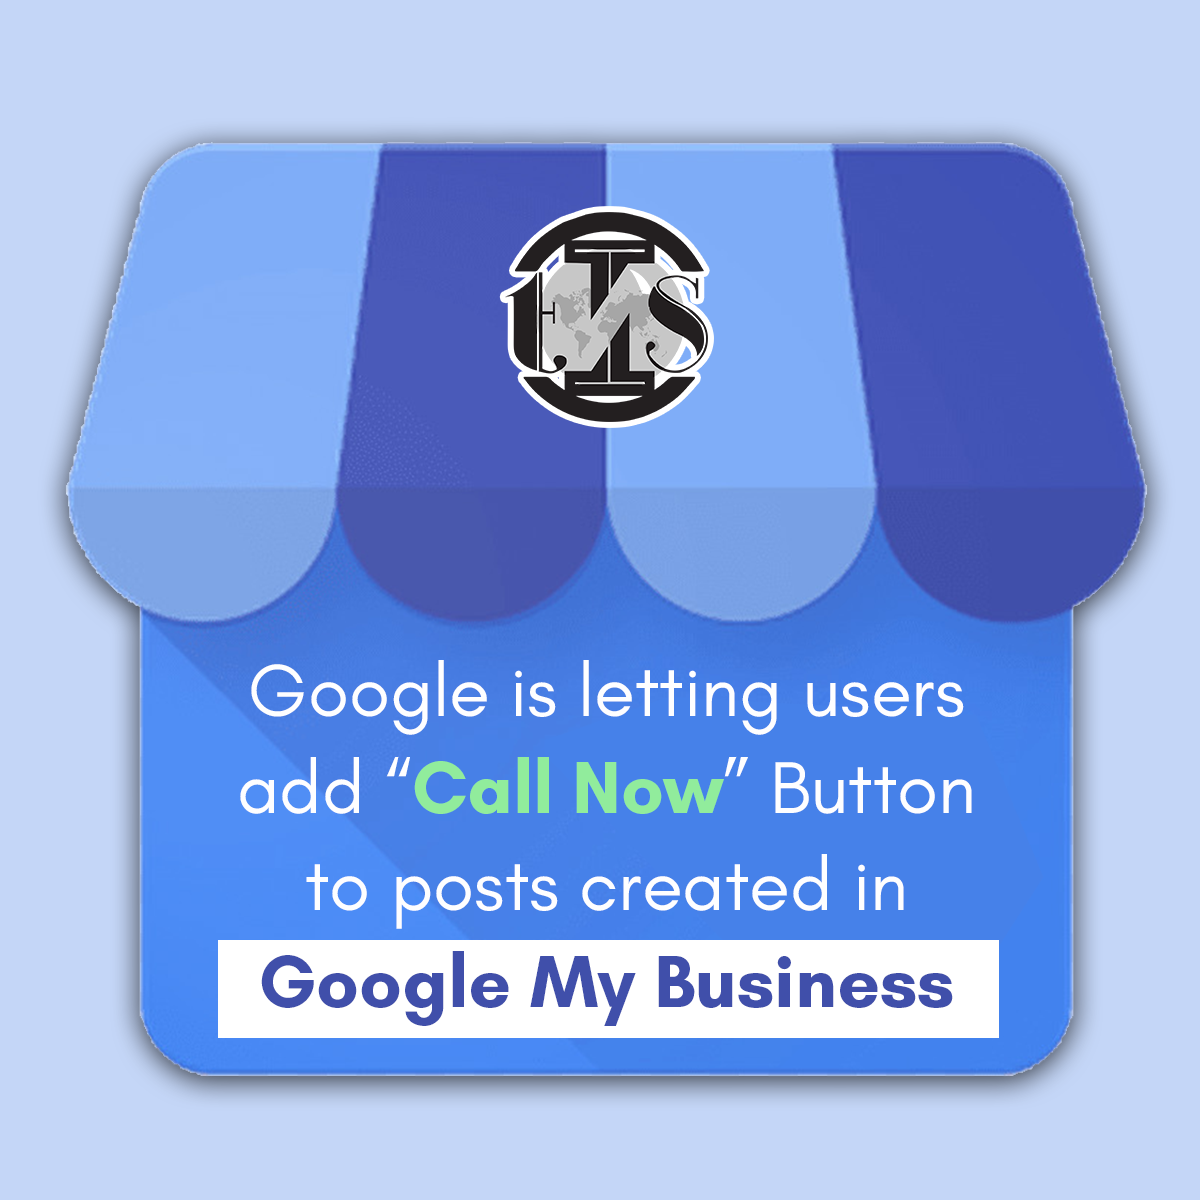 Google Thoughts Internet Marketing Company Google Business Online Advertising